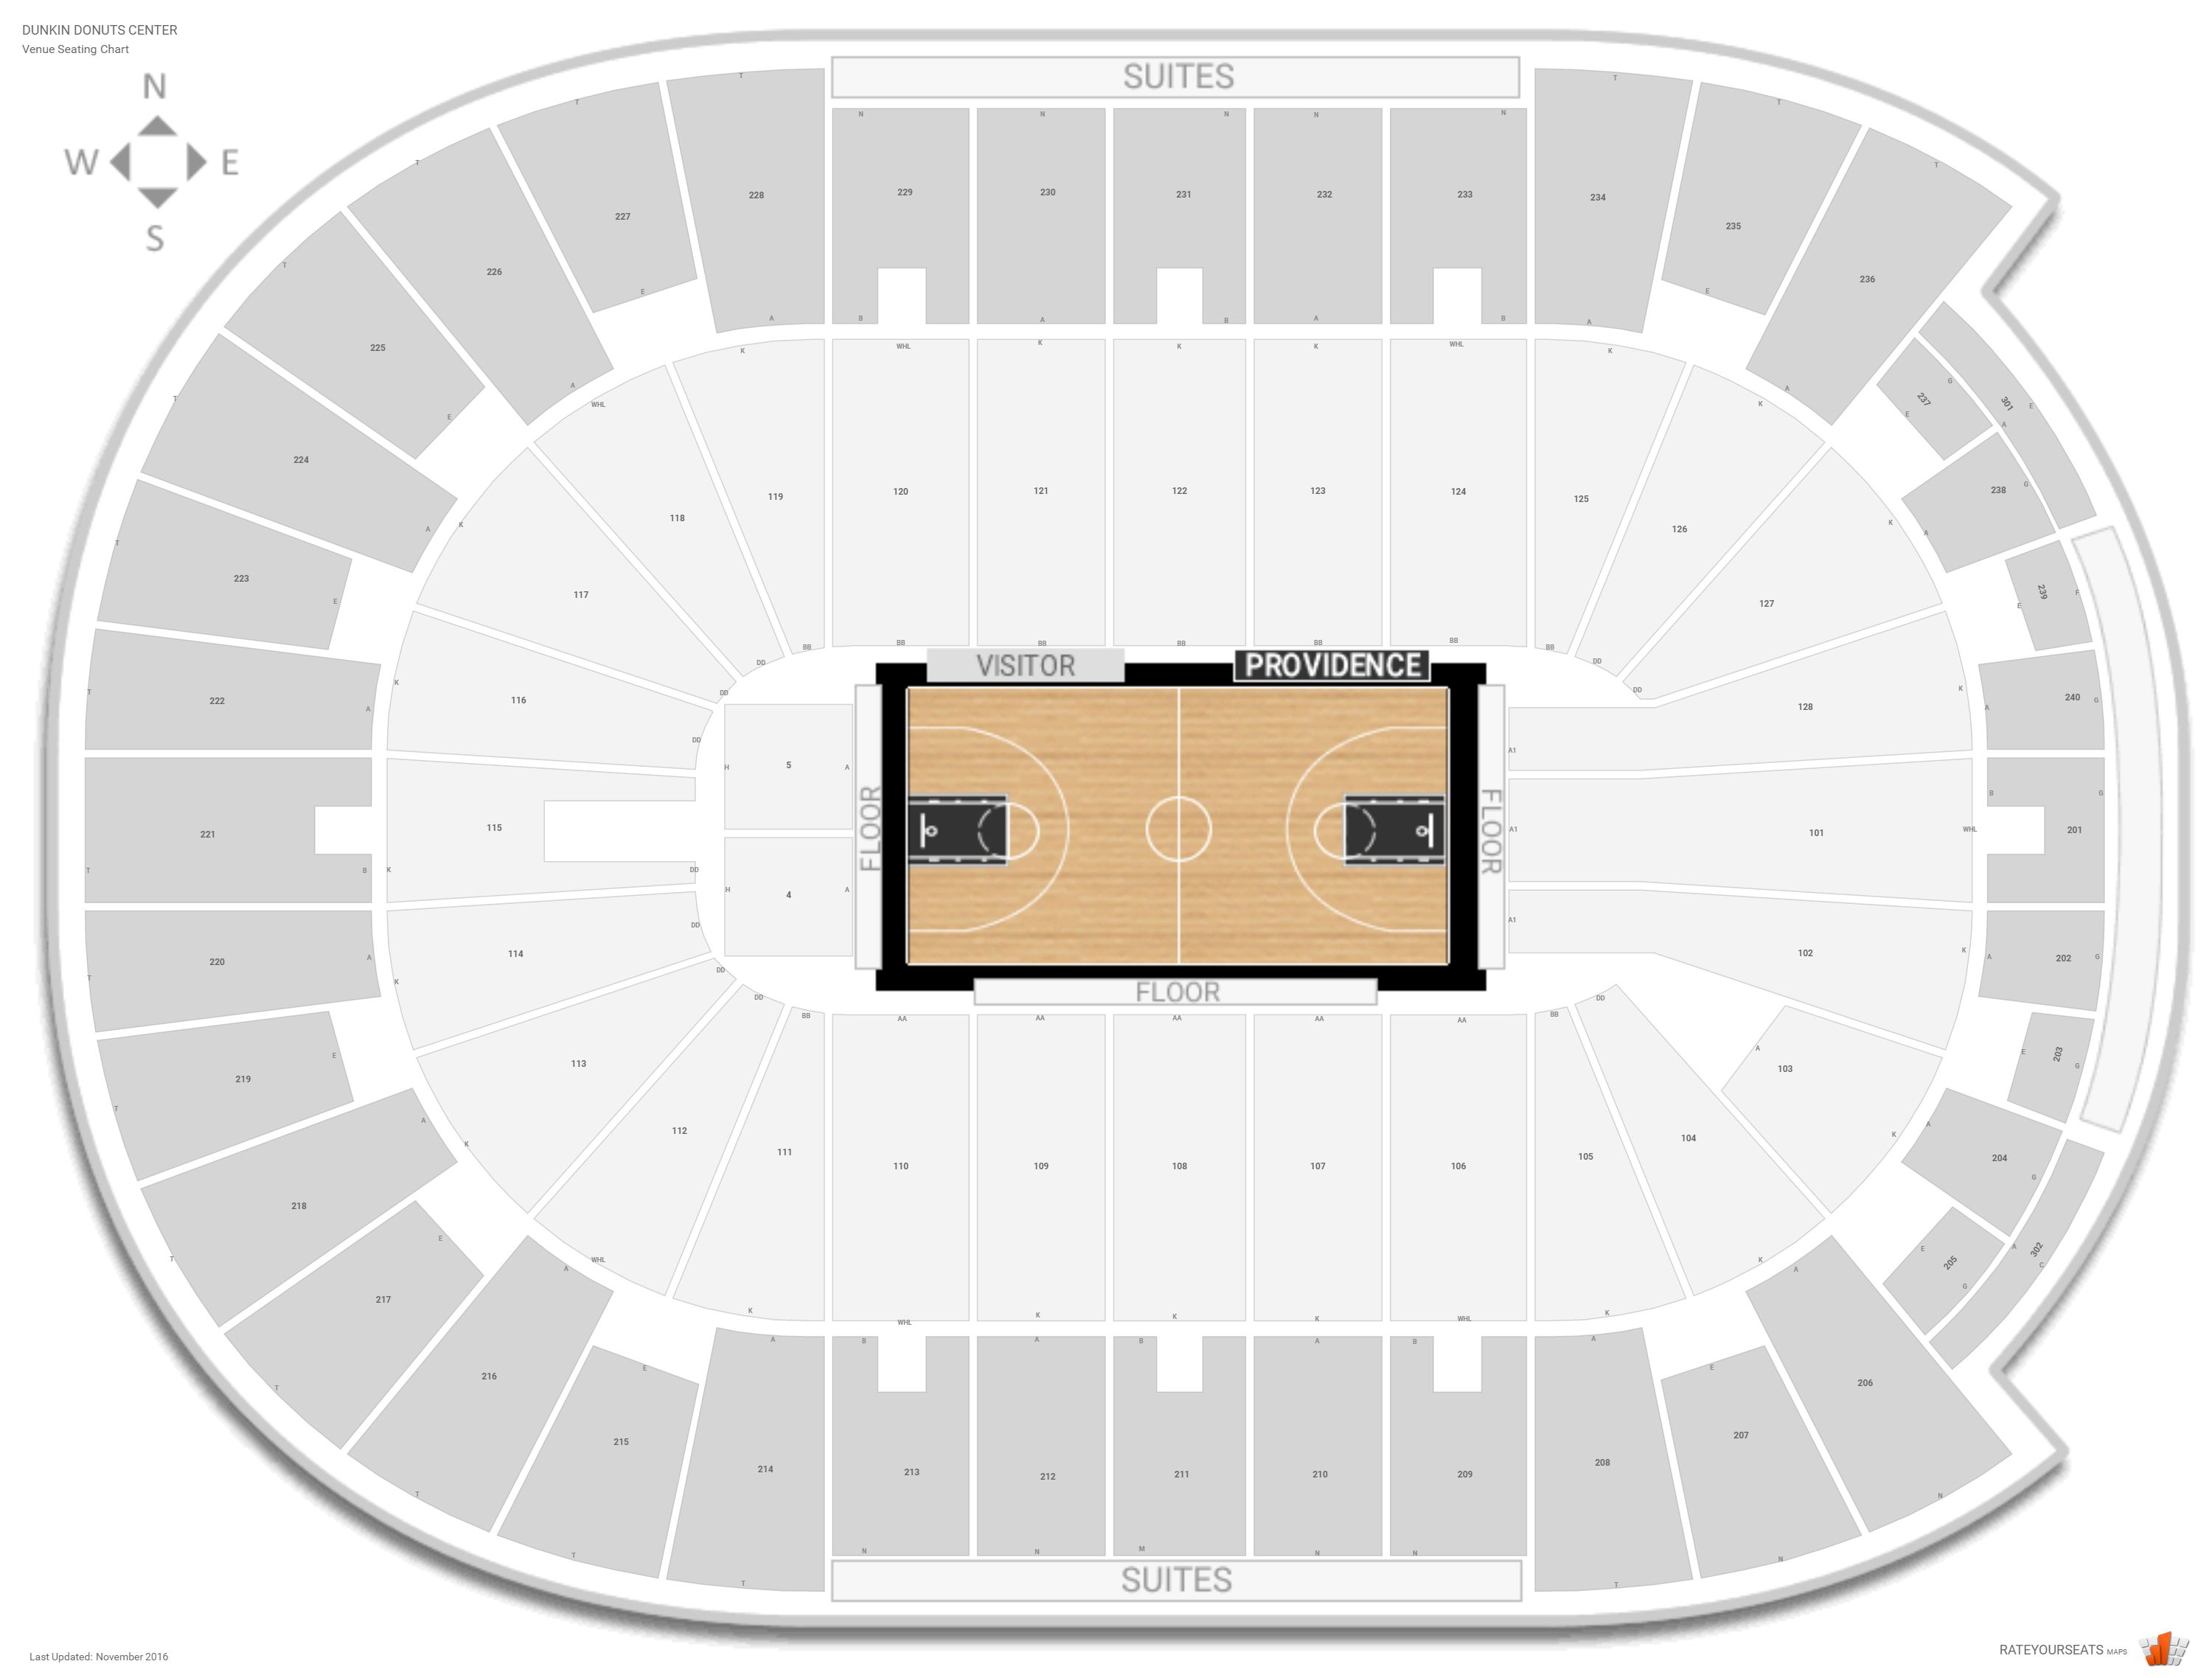 Dunkin Donuts Center (Providence) Seating Guide ...